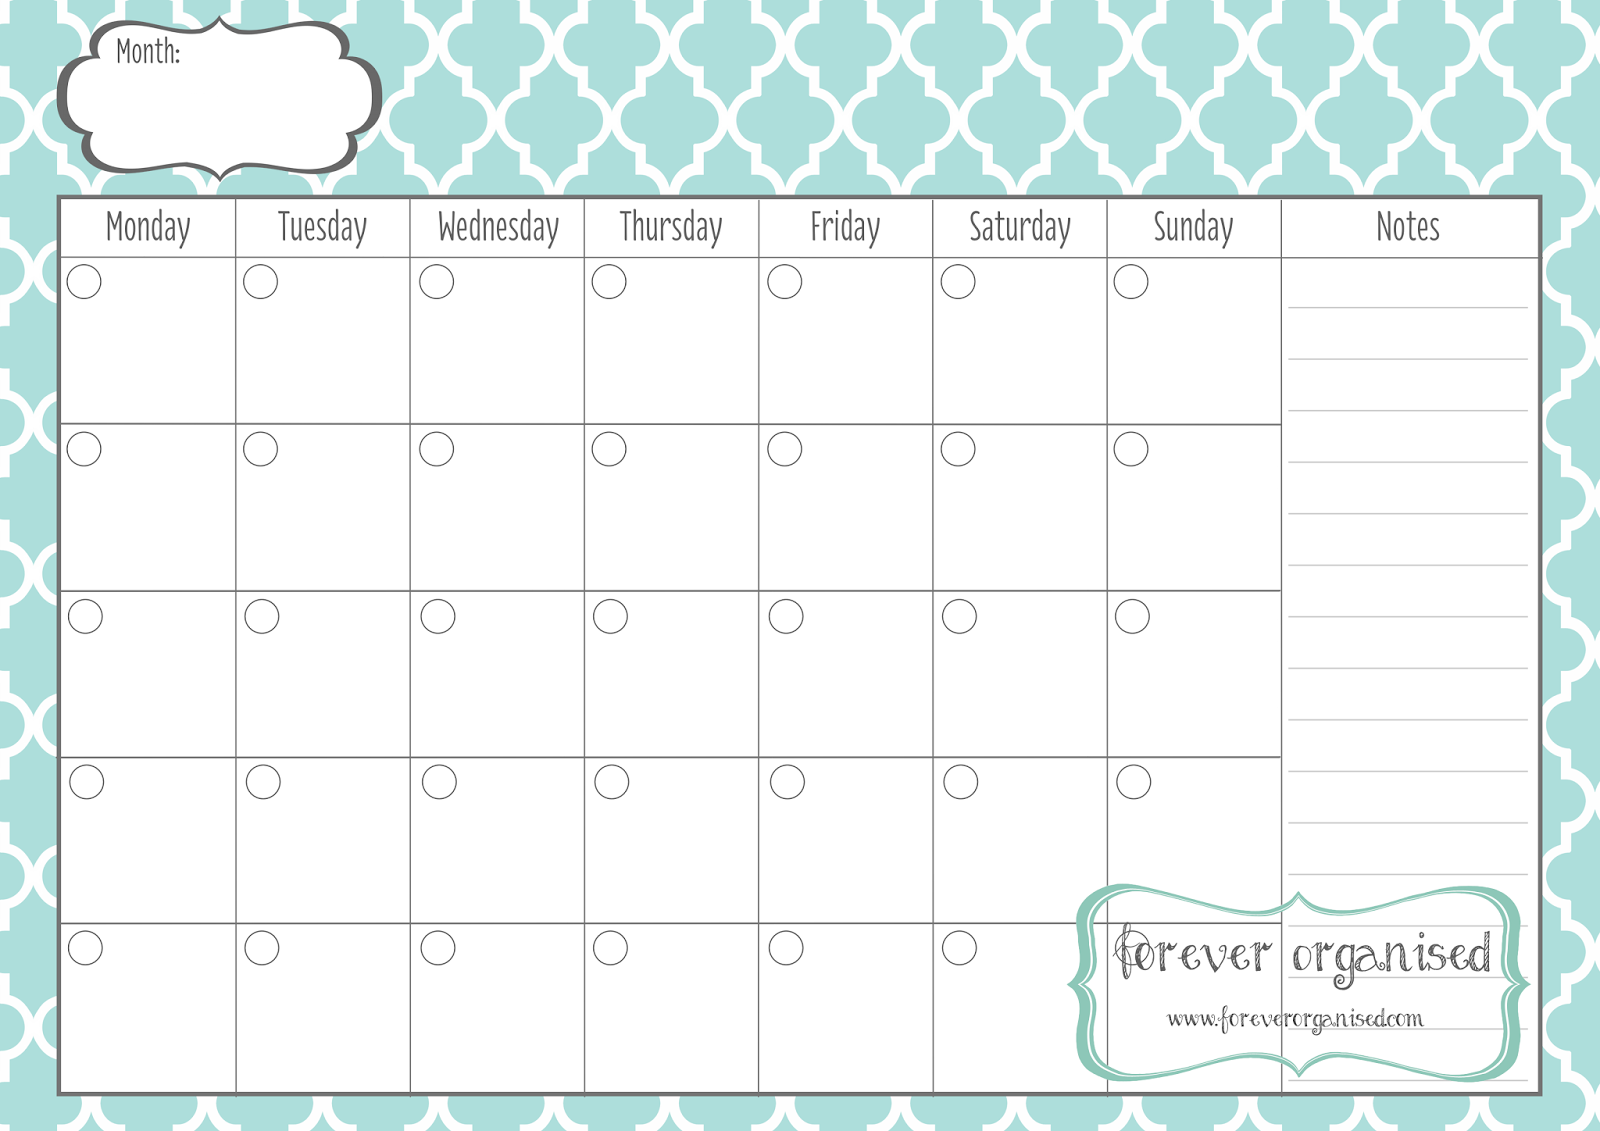 Monthly Calendar Print Out | monthly calendar printable